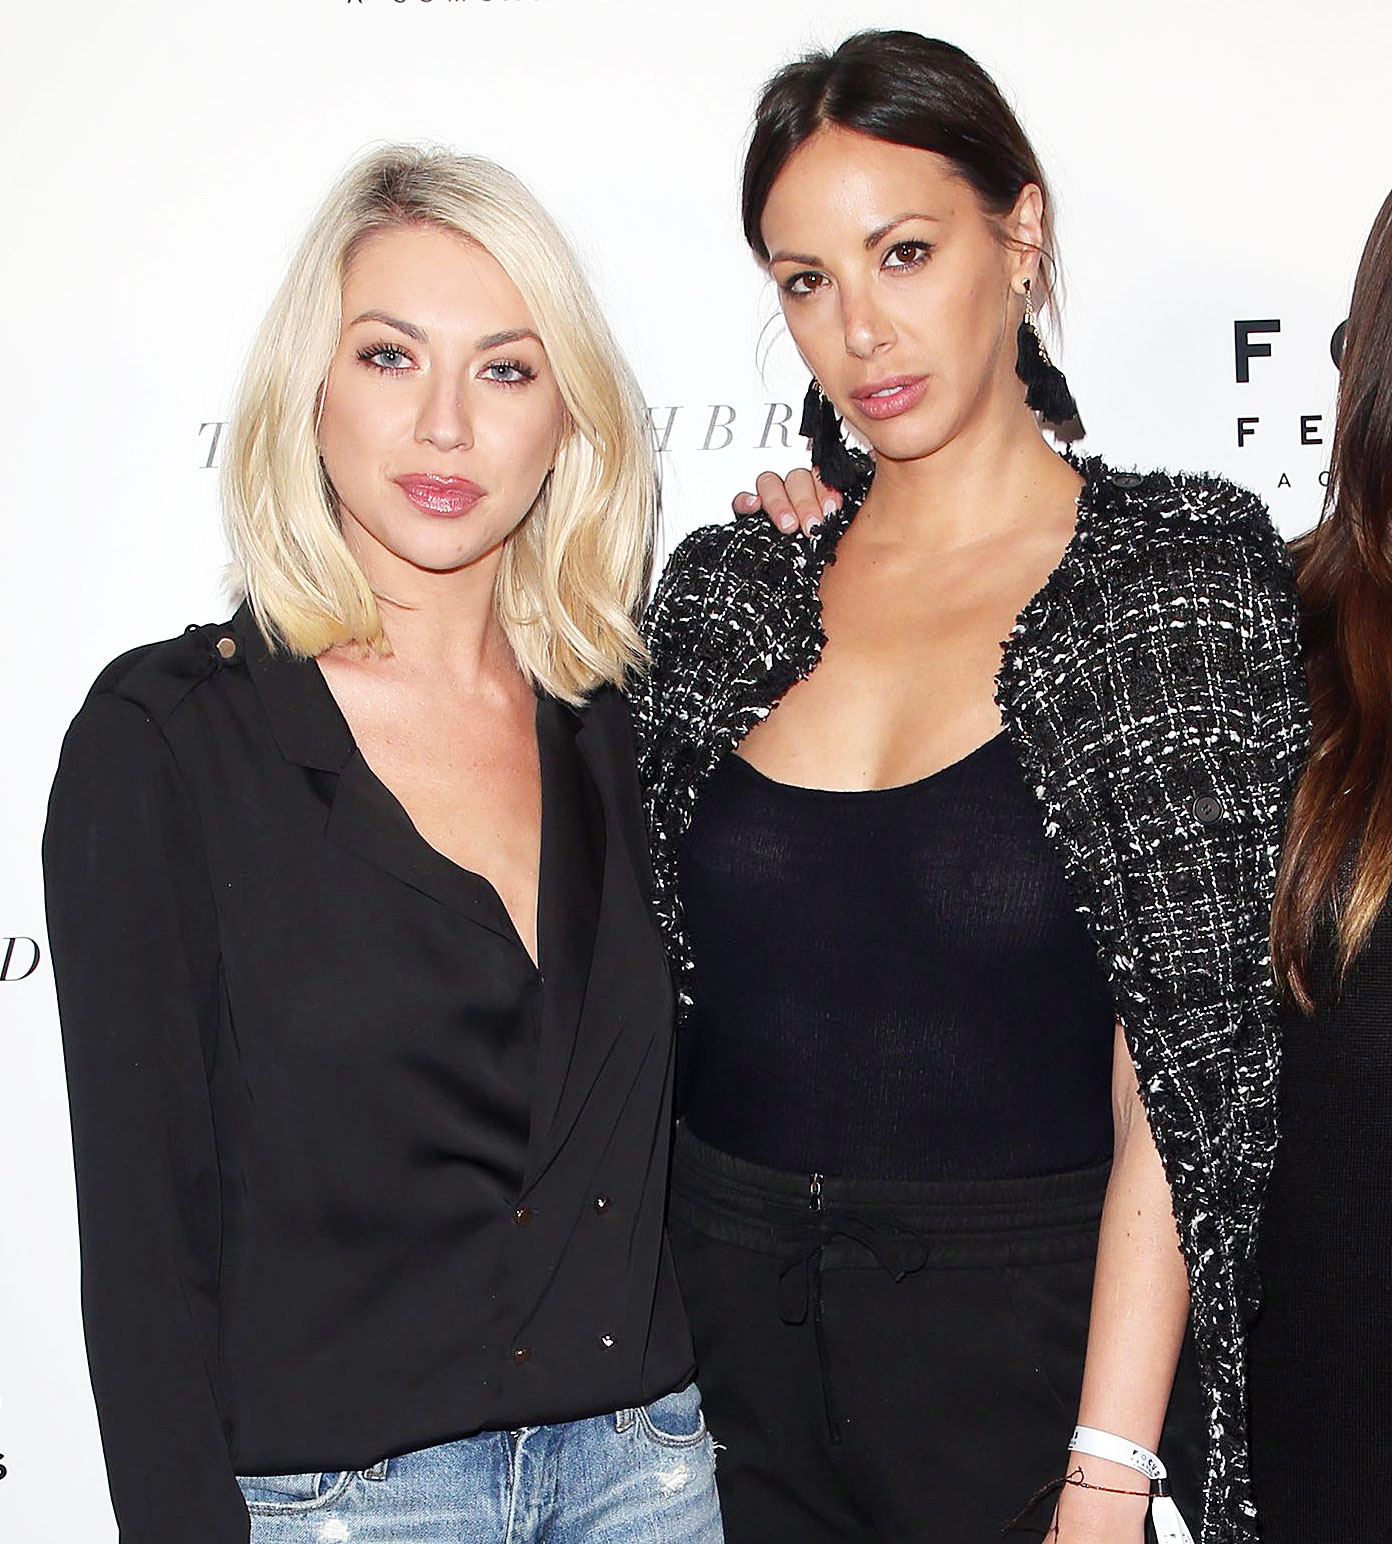 Stassi Schroeder and Kristen Doute Fired From Vanderpump Rules